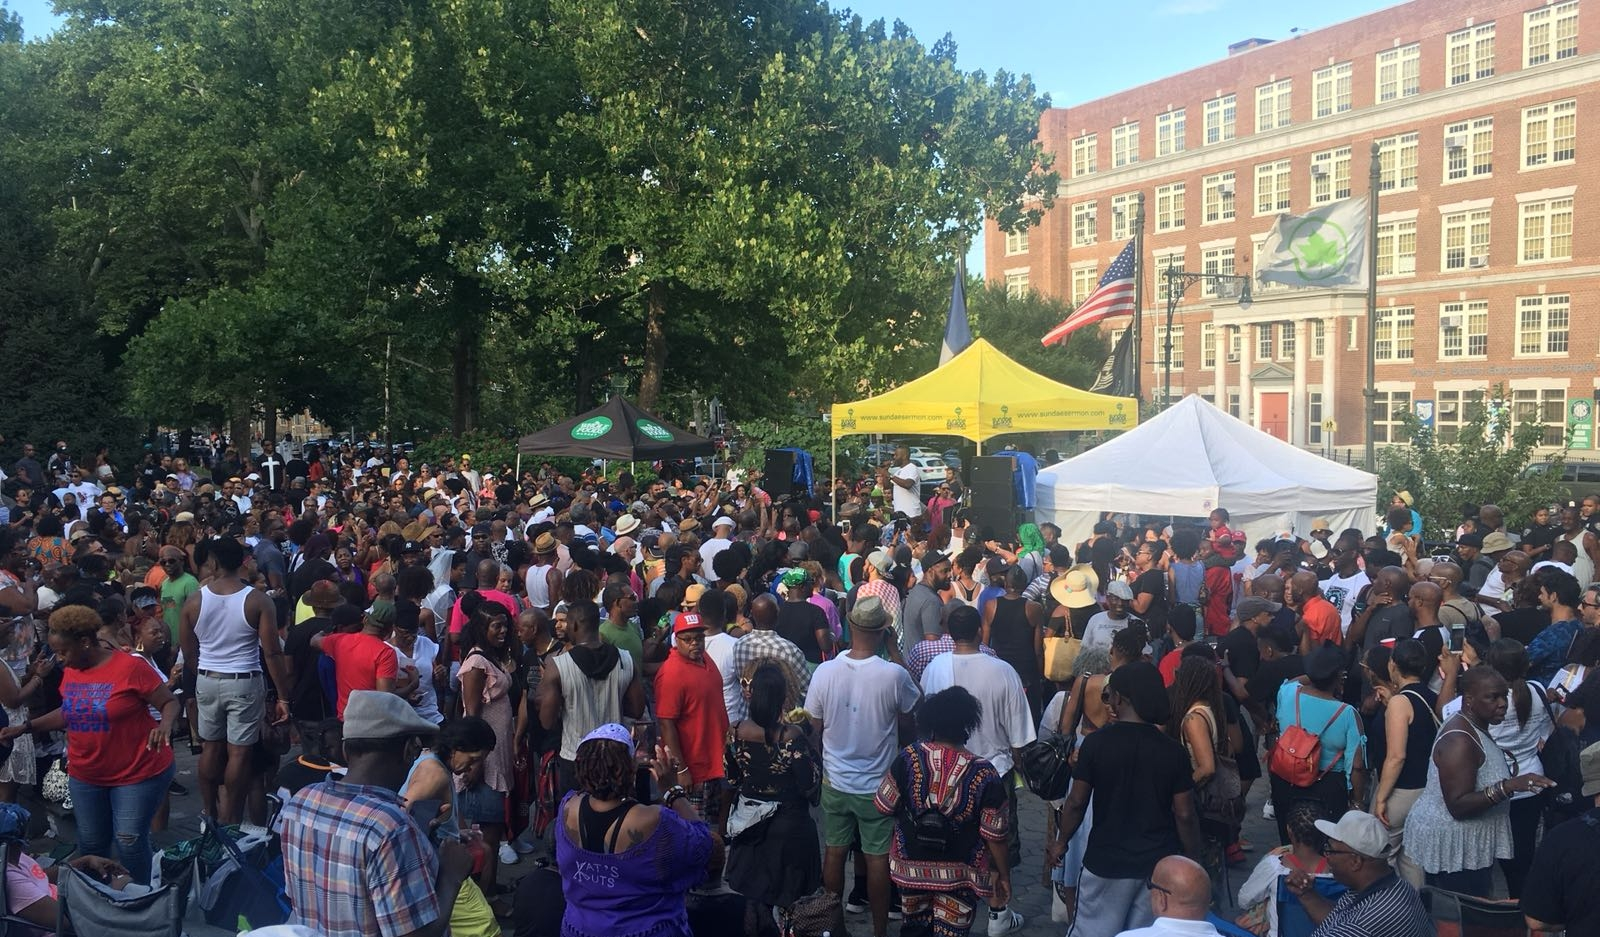 A PARTY AT THE 135TH ST STAGE WHERE JANET JACKSON PERFORMED YESTERDAY